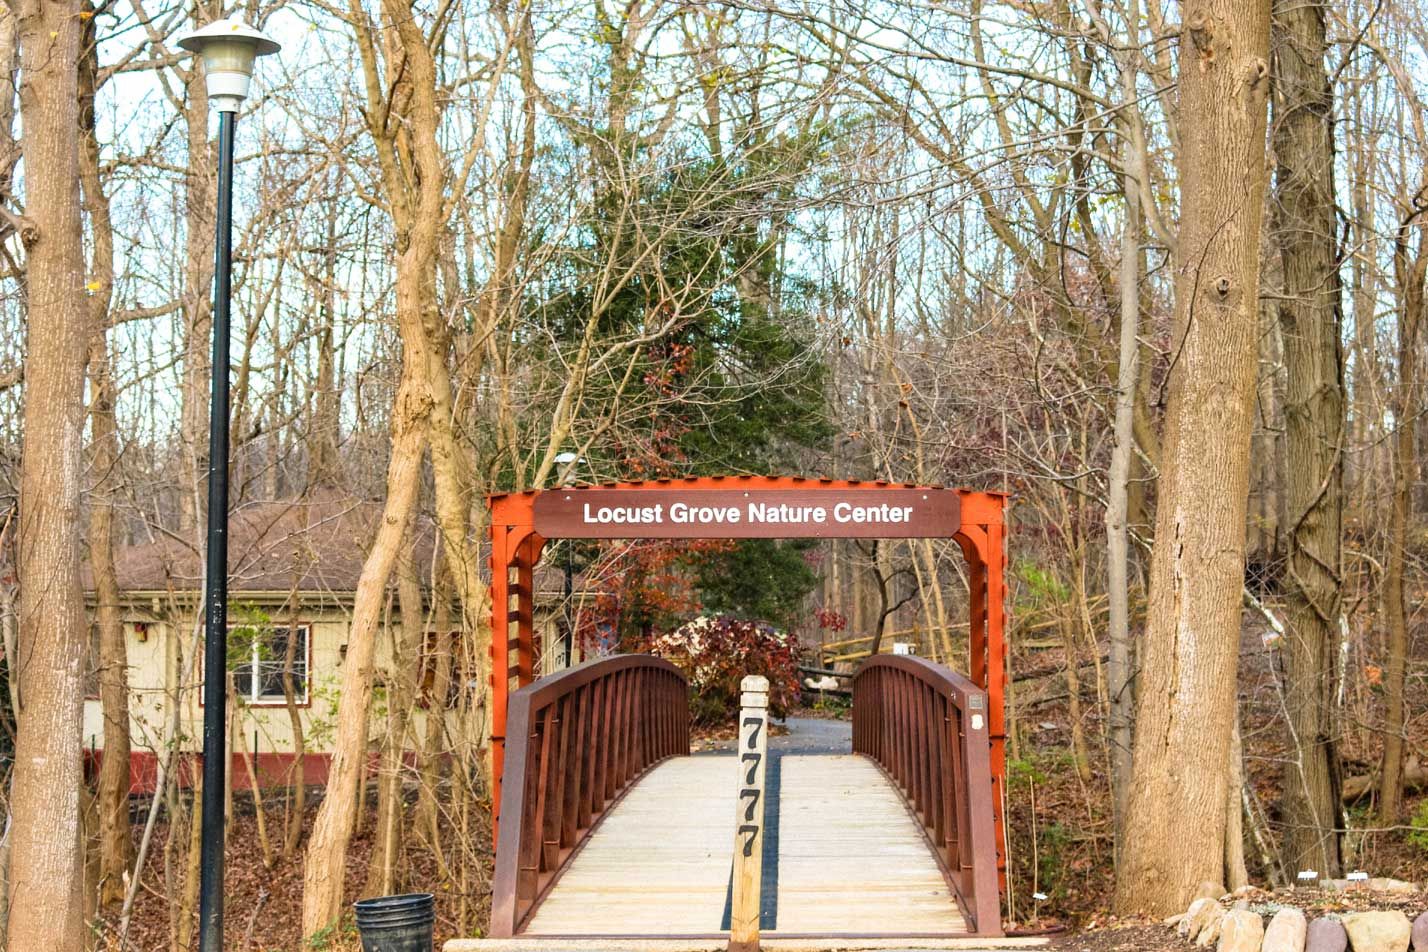 Locust Grove Nature Center in Potomac, MD